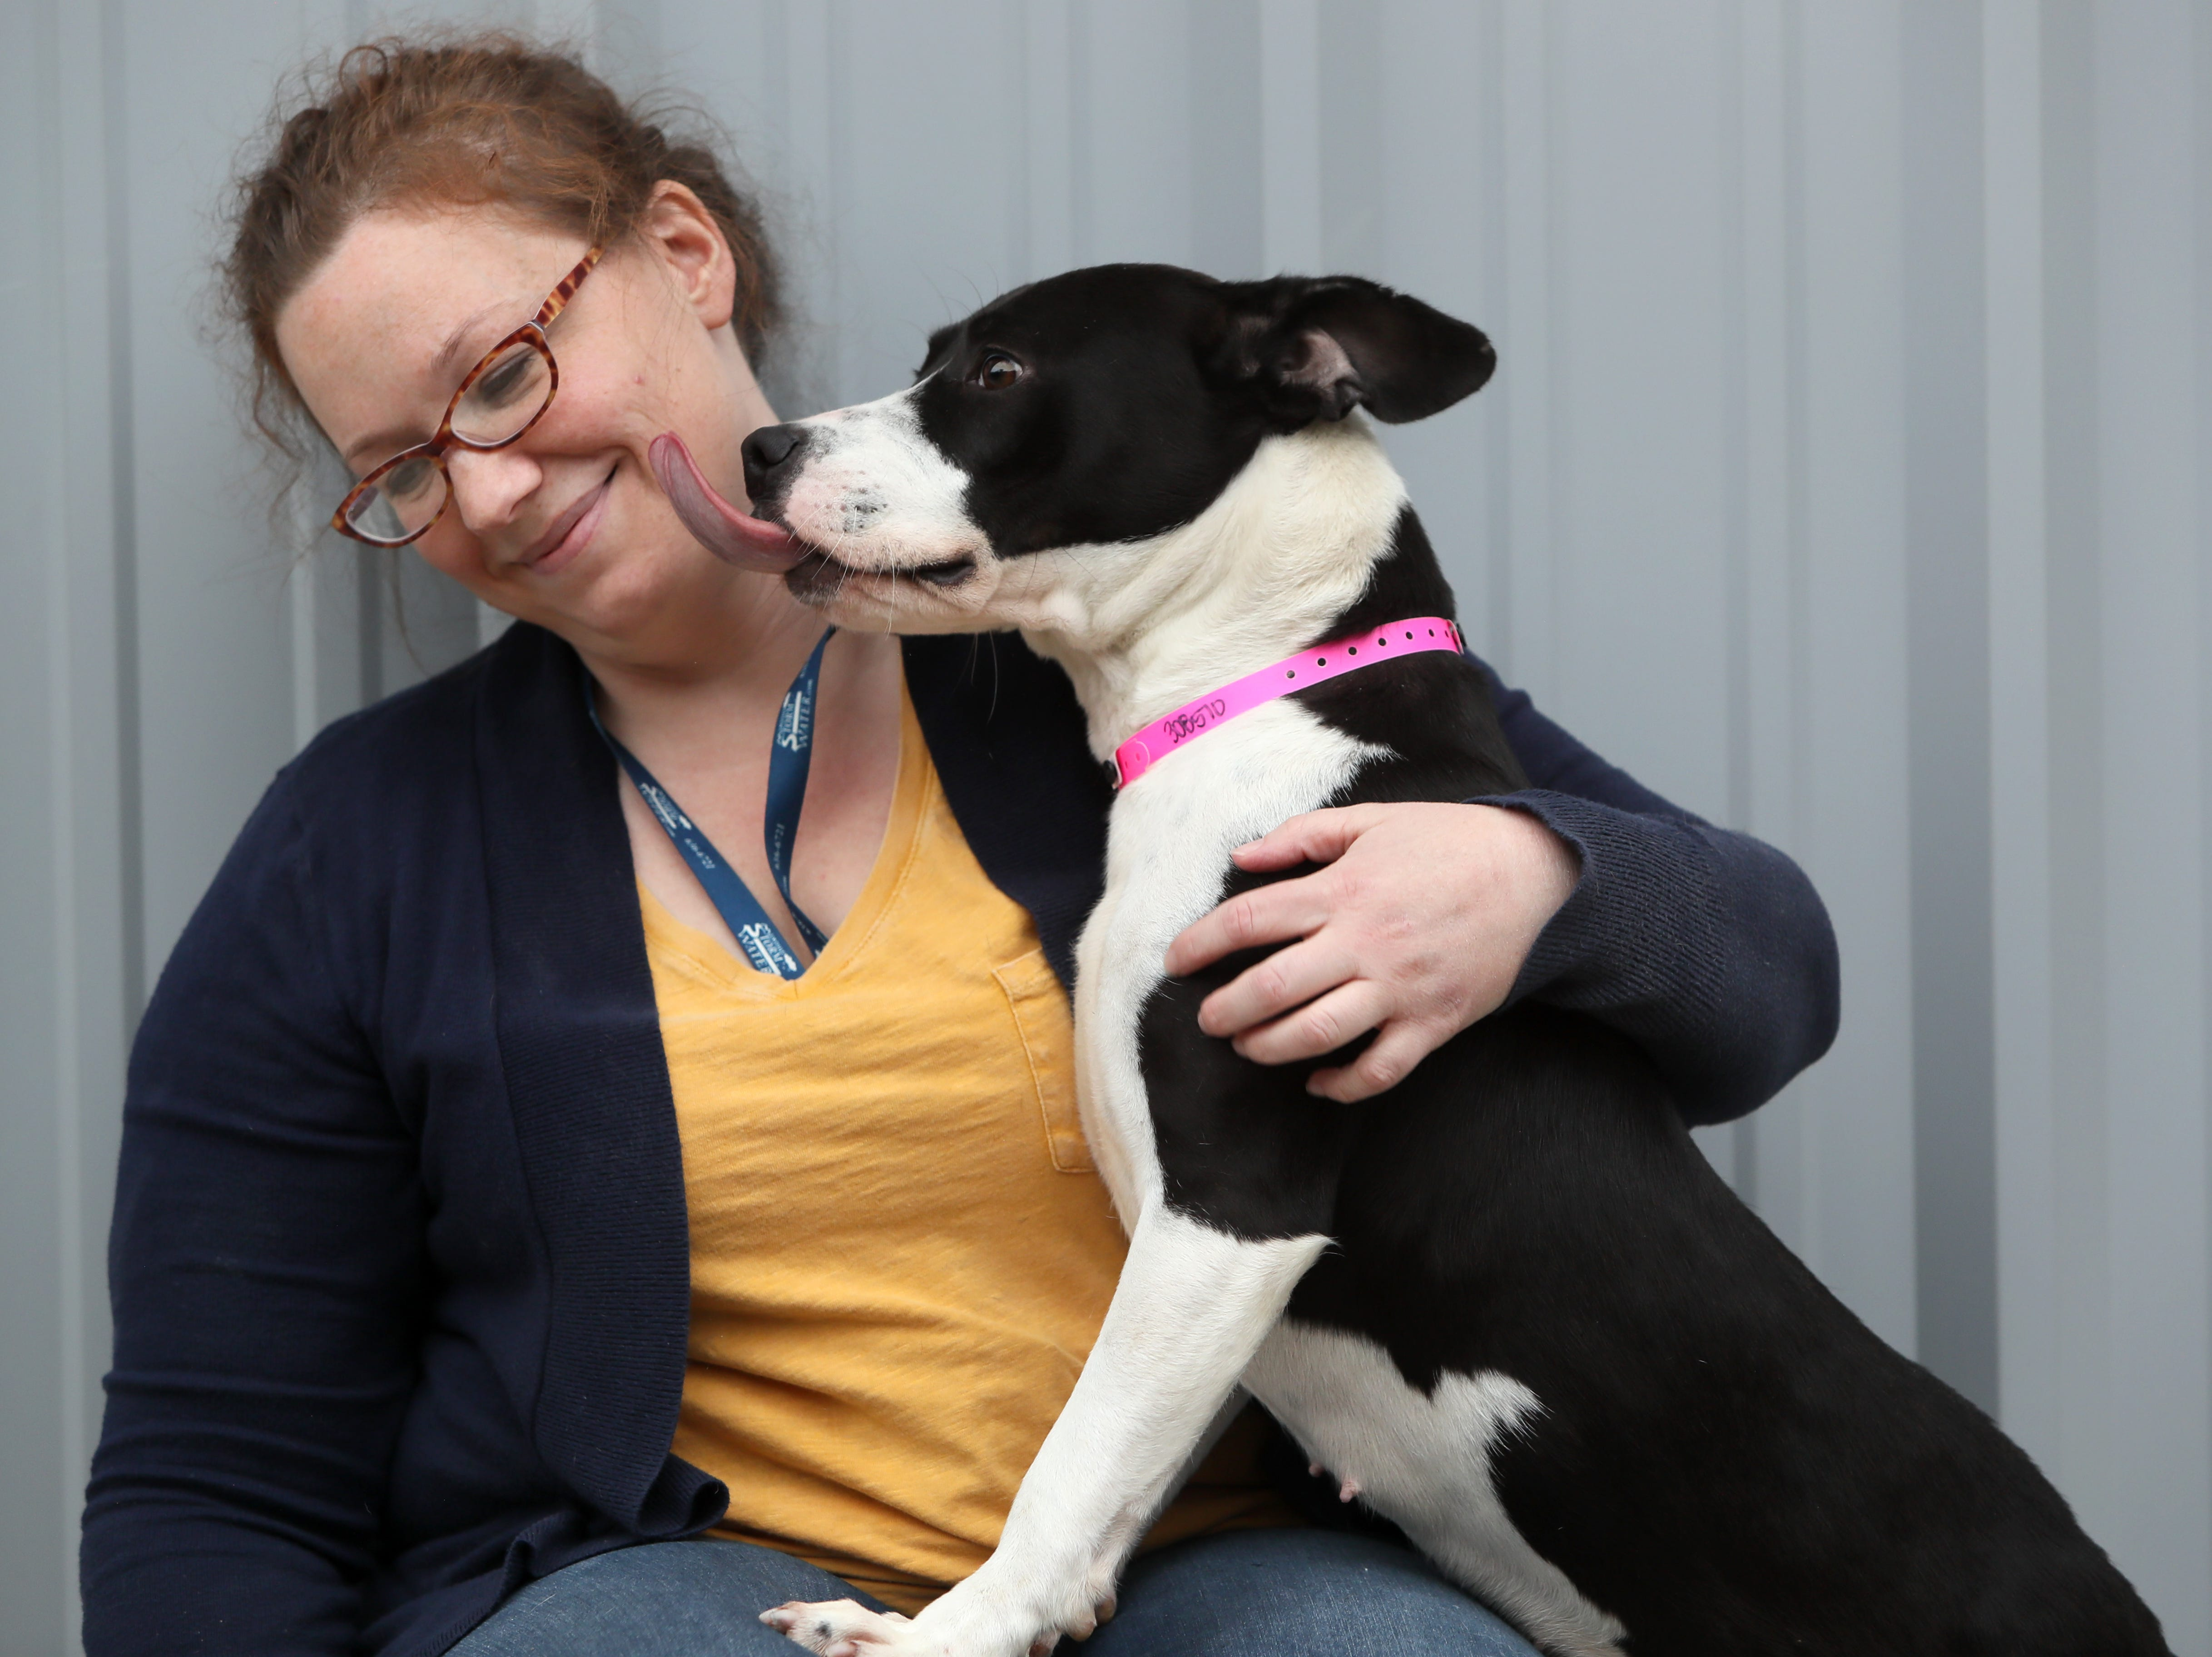 Jada, a 2-year-old female, licks Community Engagement Specialist Katie Pemberton at the Memphis Animal Services on November, 14, 2018. Jada is a part of the dog foster program that aims to find temporary placement for dogs selected each week that are in the at-risk population of the shelter.